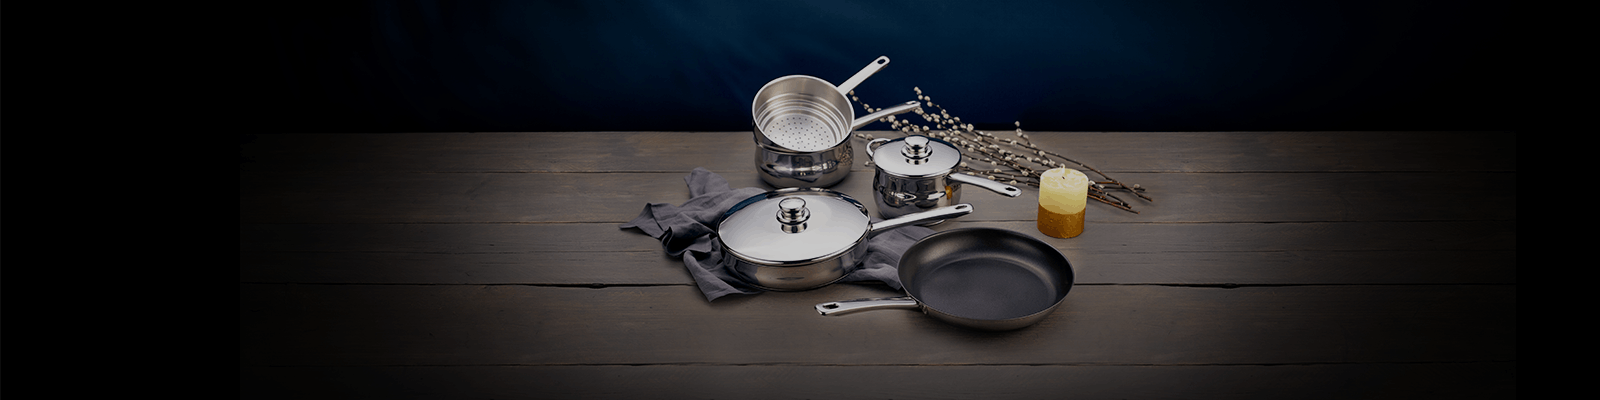 Stellar 1000 stainless steel pot and pans